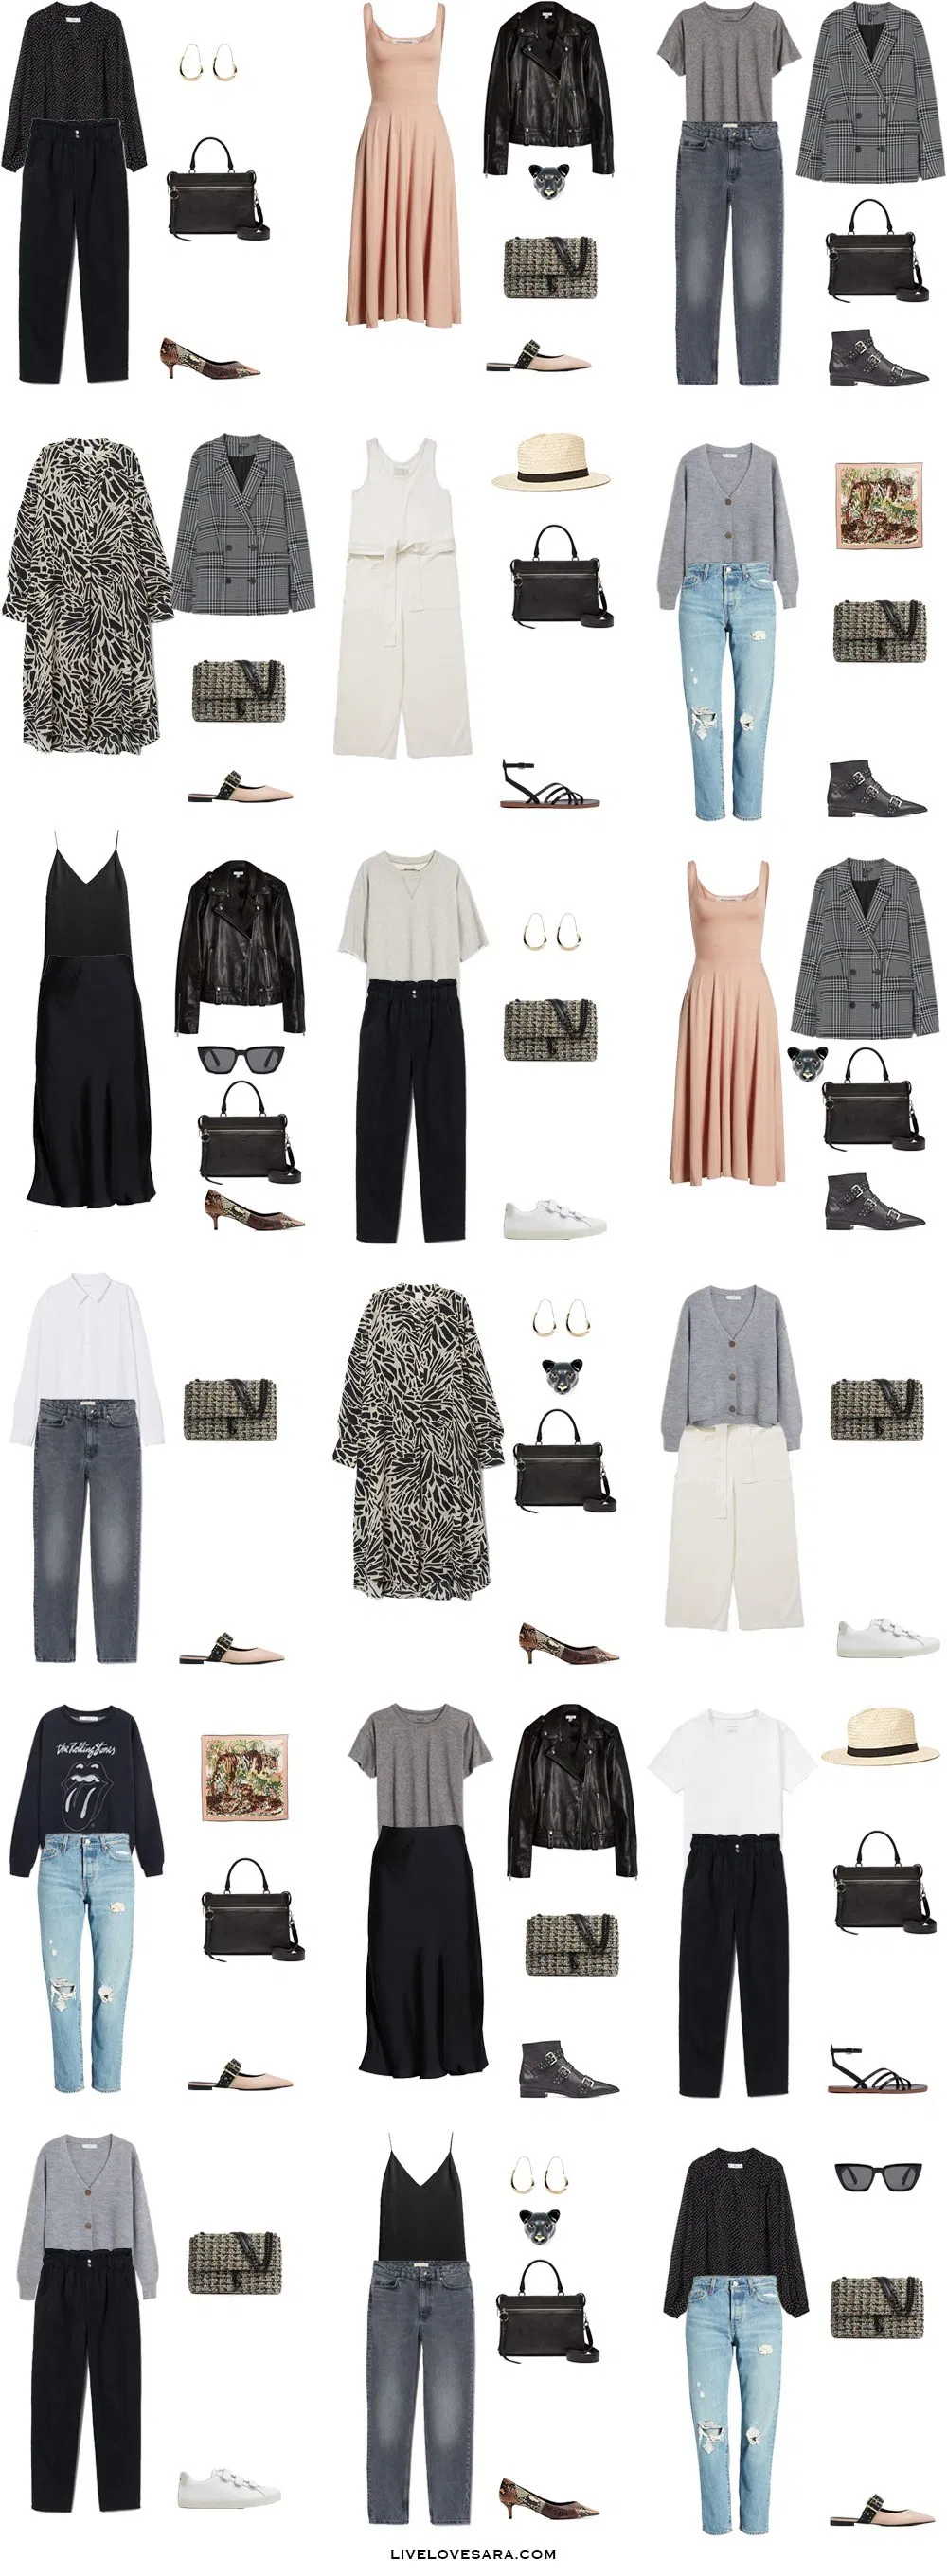 How to Build an Edgy Capsule Wardrobe for Spring and Summer | Edgy Outfit Ideas